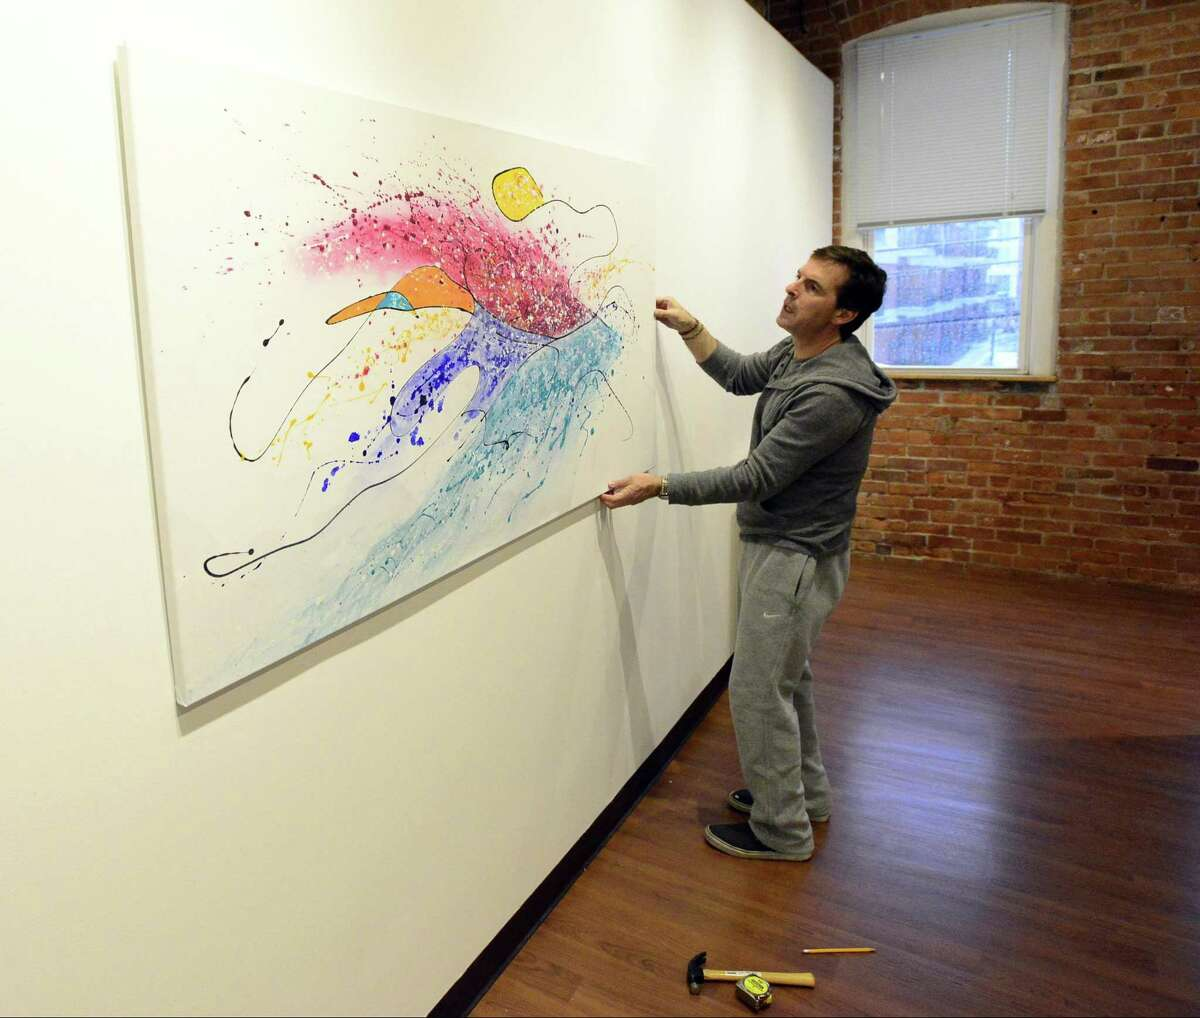 Mark Macrides of the Loft Artists Association installs a piece by Lisa Cuscuna, one of several artist that are part of a gallery of paintings for the upcoming Colorfields Exhibit on Wednesday, Feb. 7, 2018 in Stamford, Connecticut. The exhibit is part of a collaboration with the Stamford Museum and Nature Center and will open on Friday.